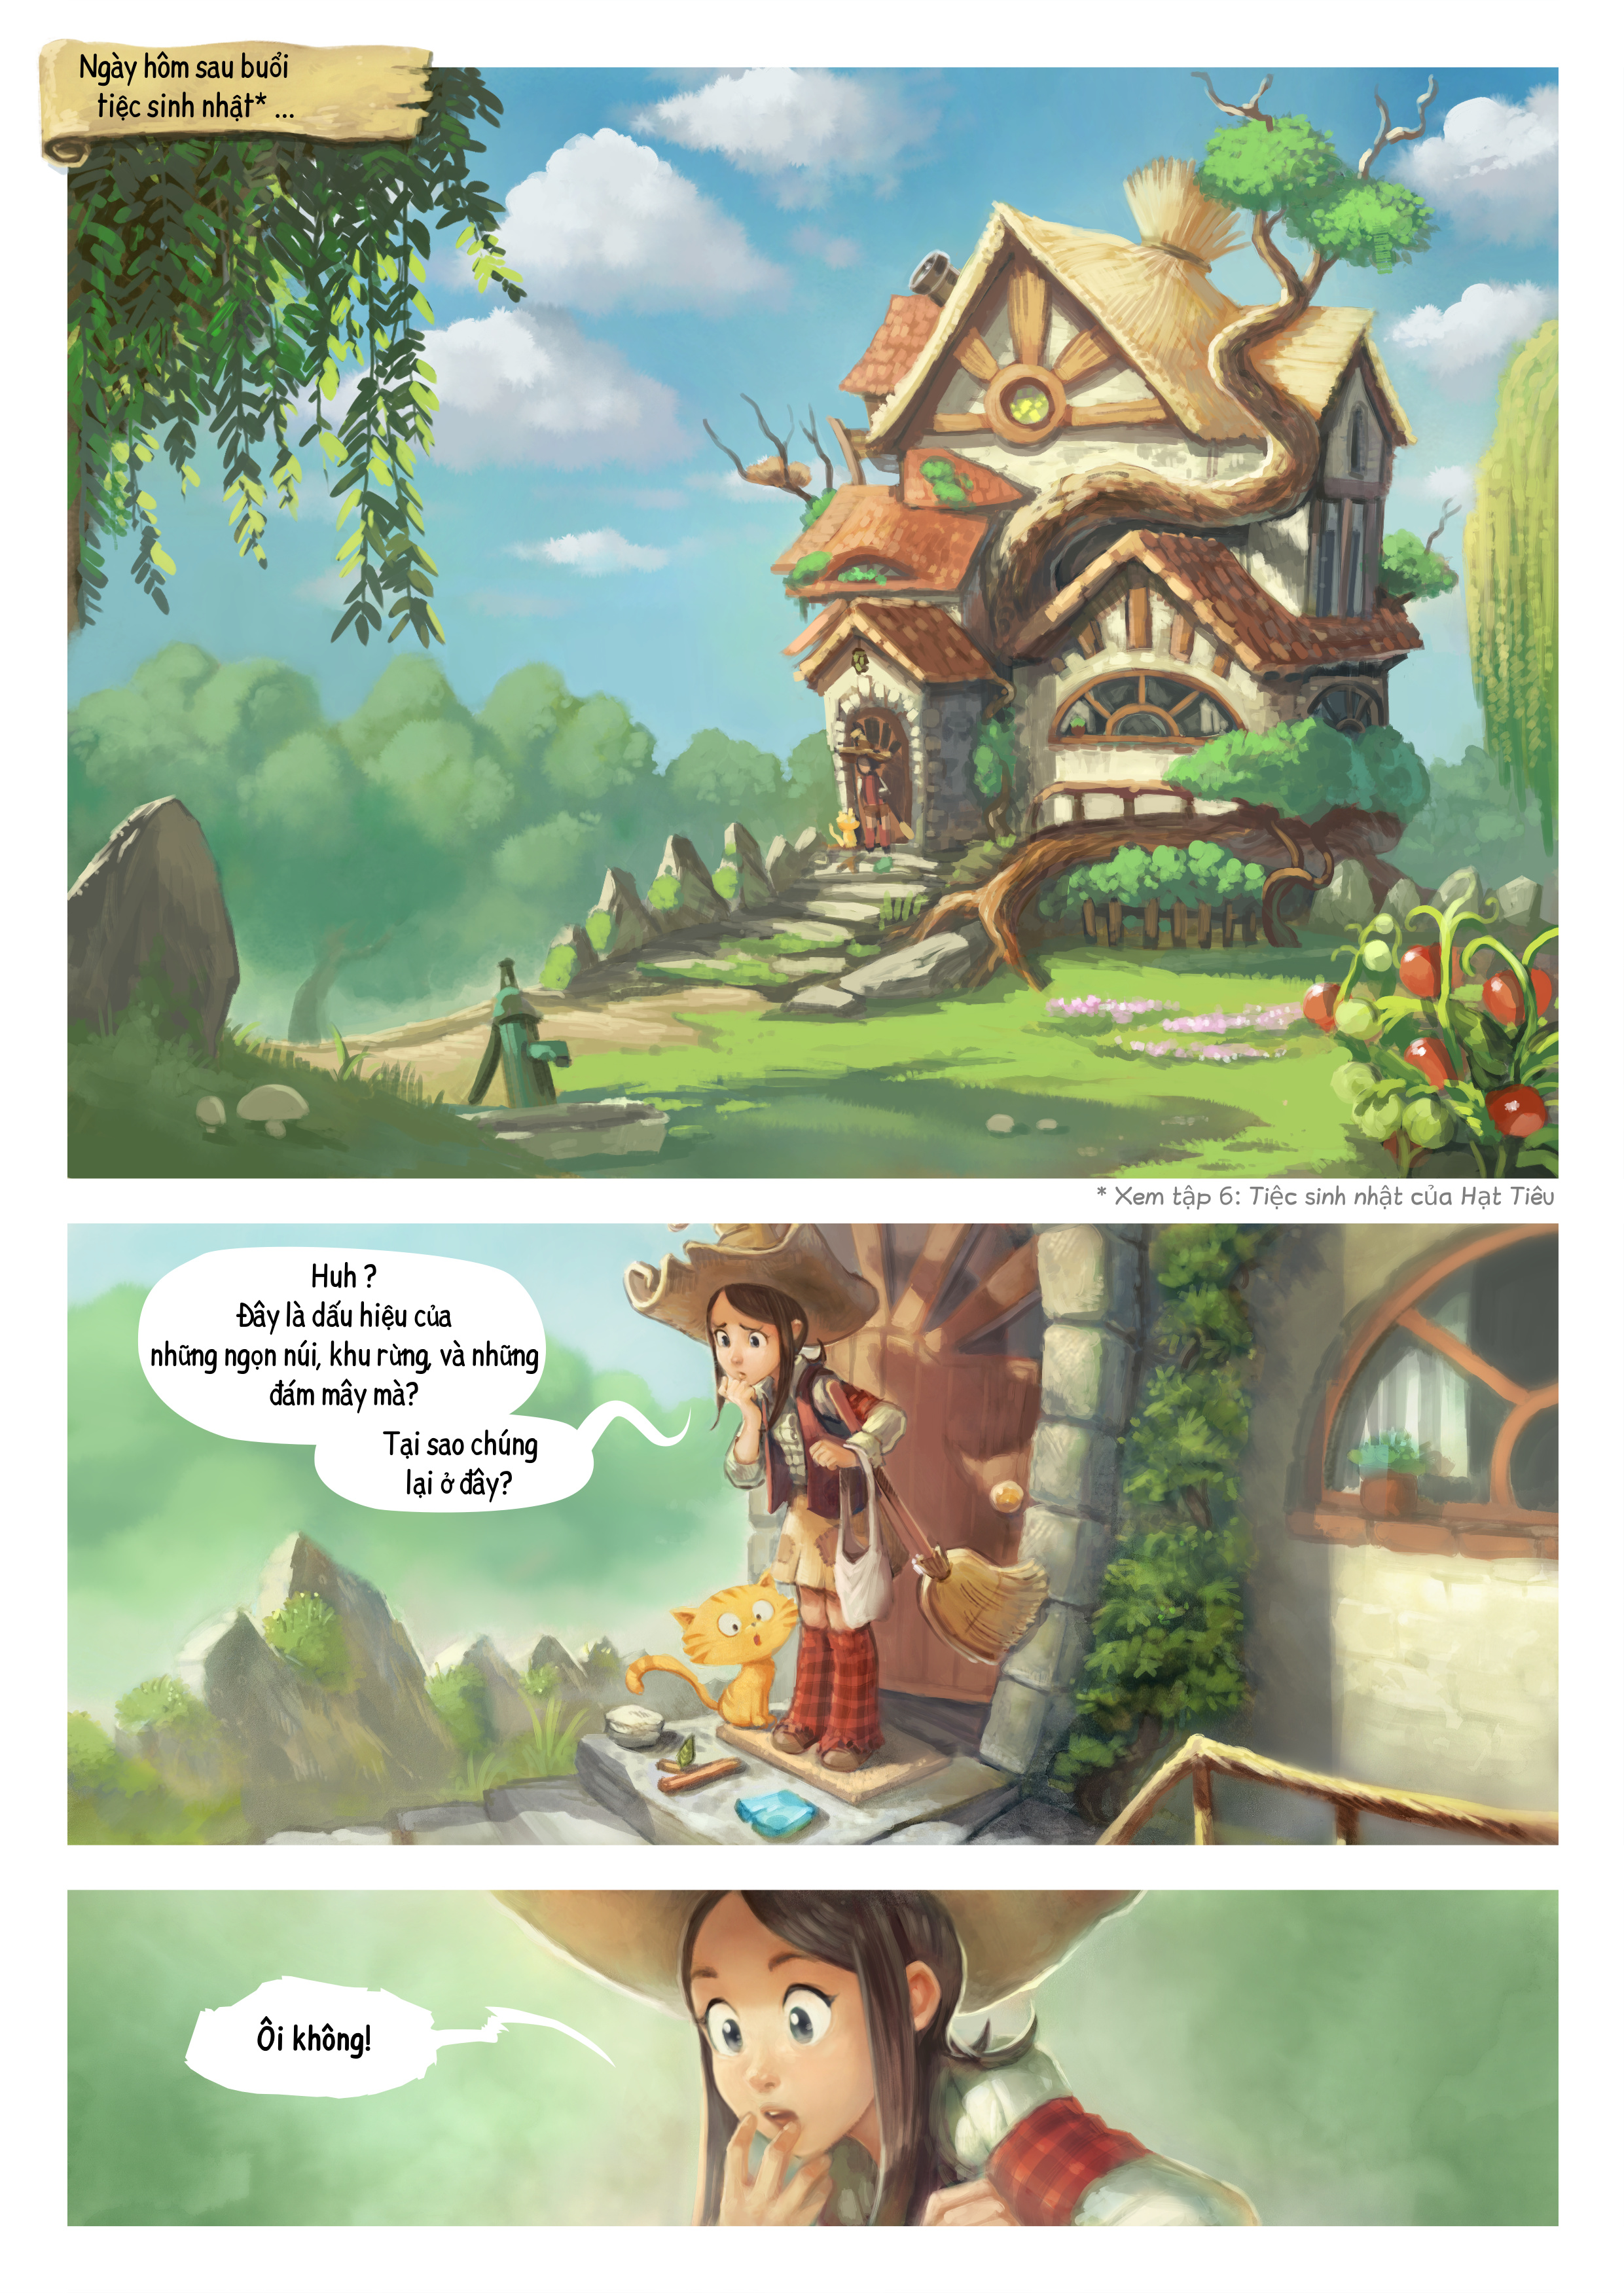 A webcomic page of Pepper&Carrot, Tập 9 [vi], trang 1